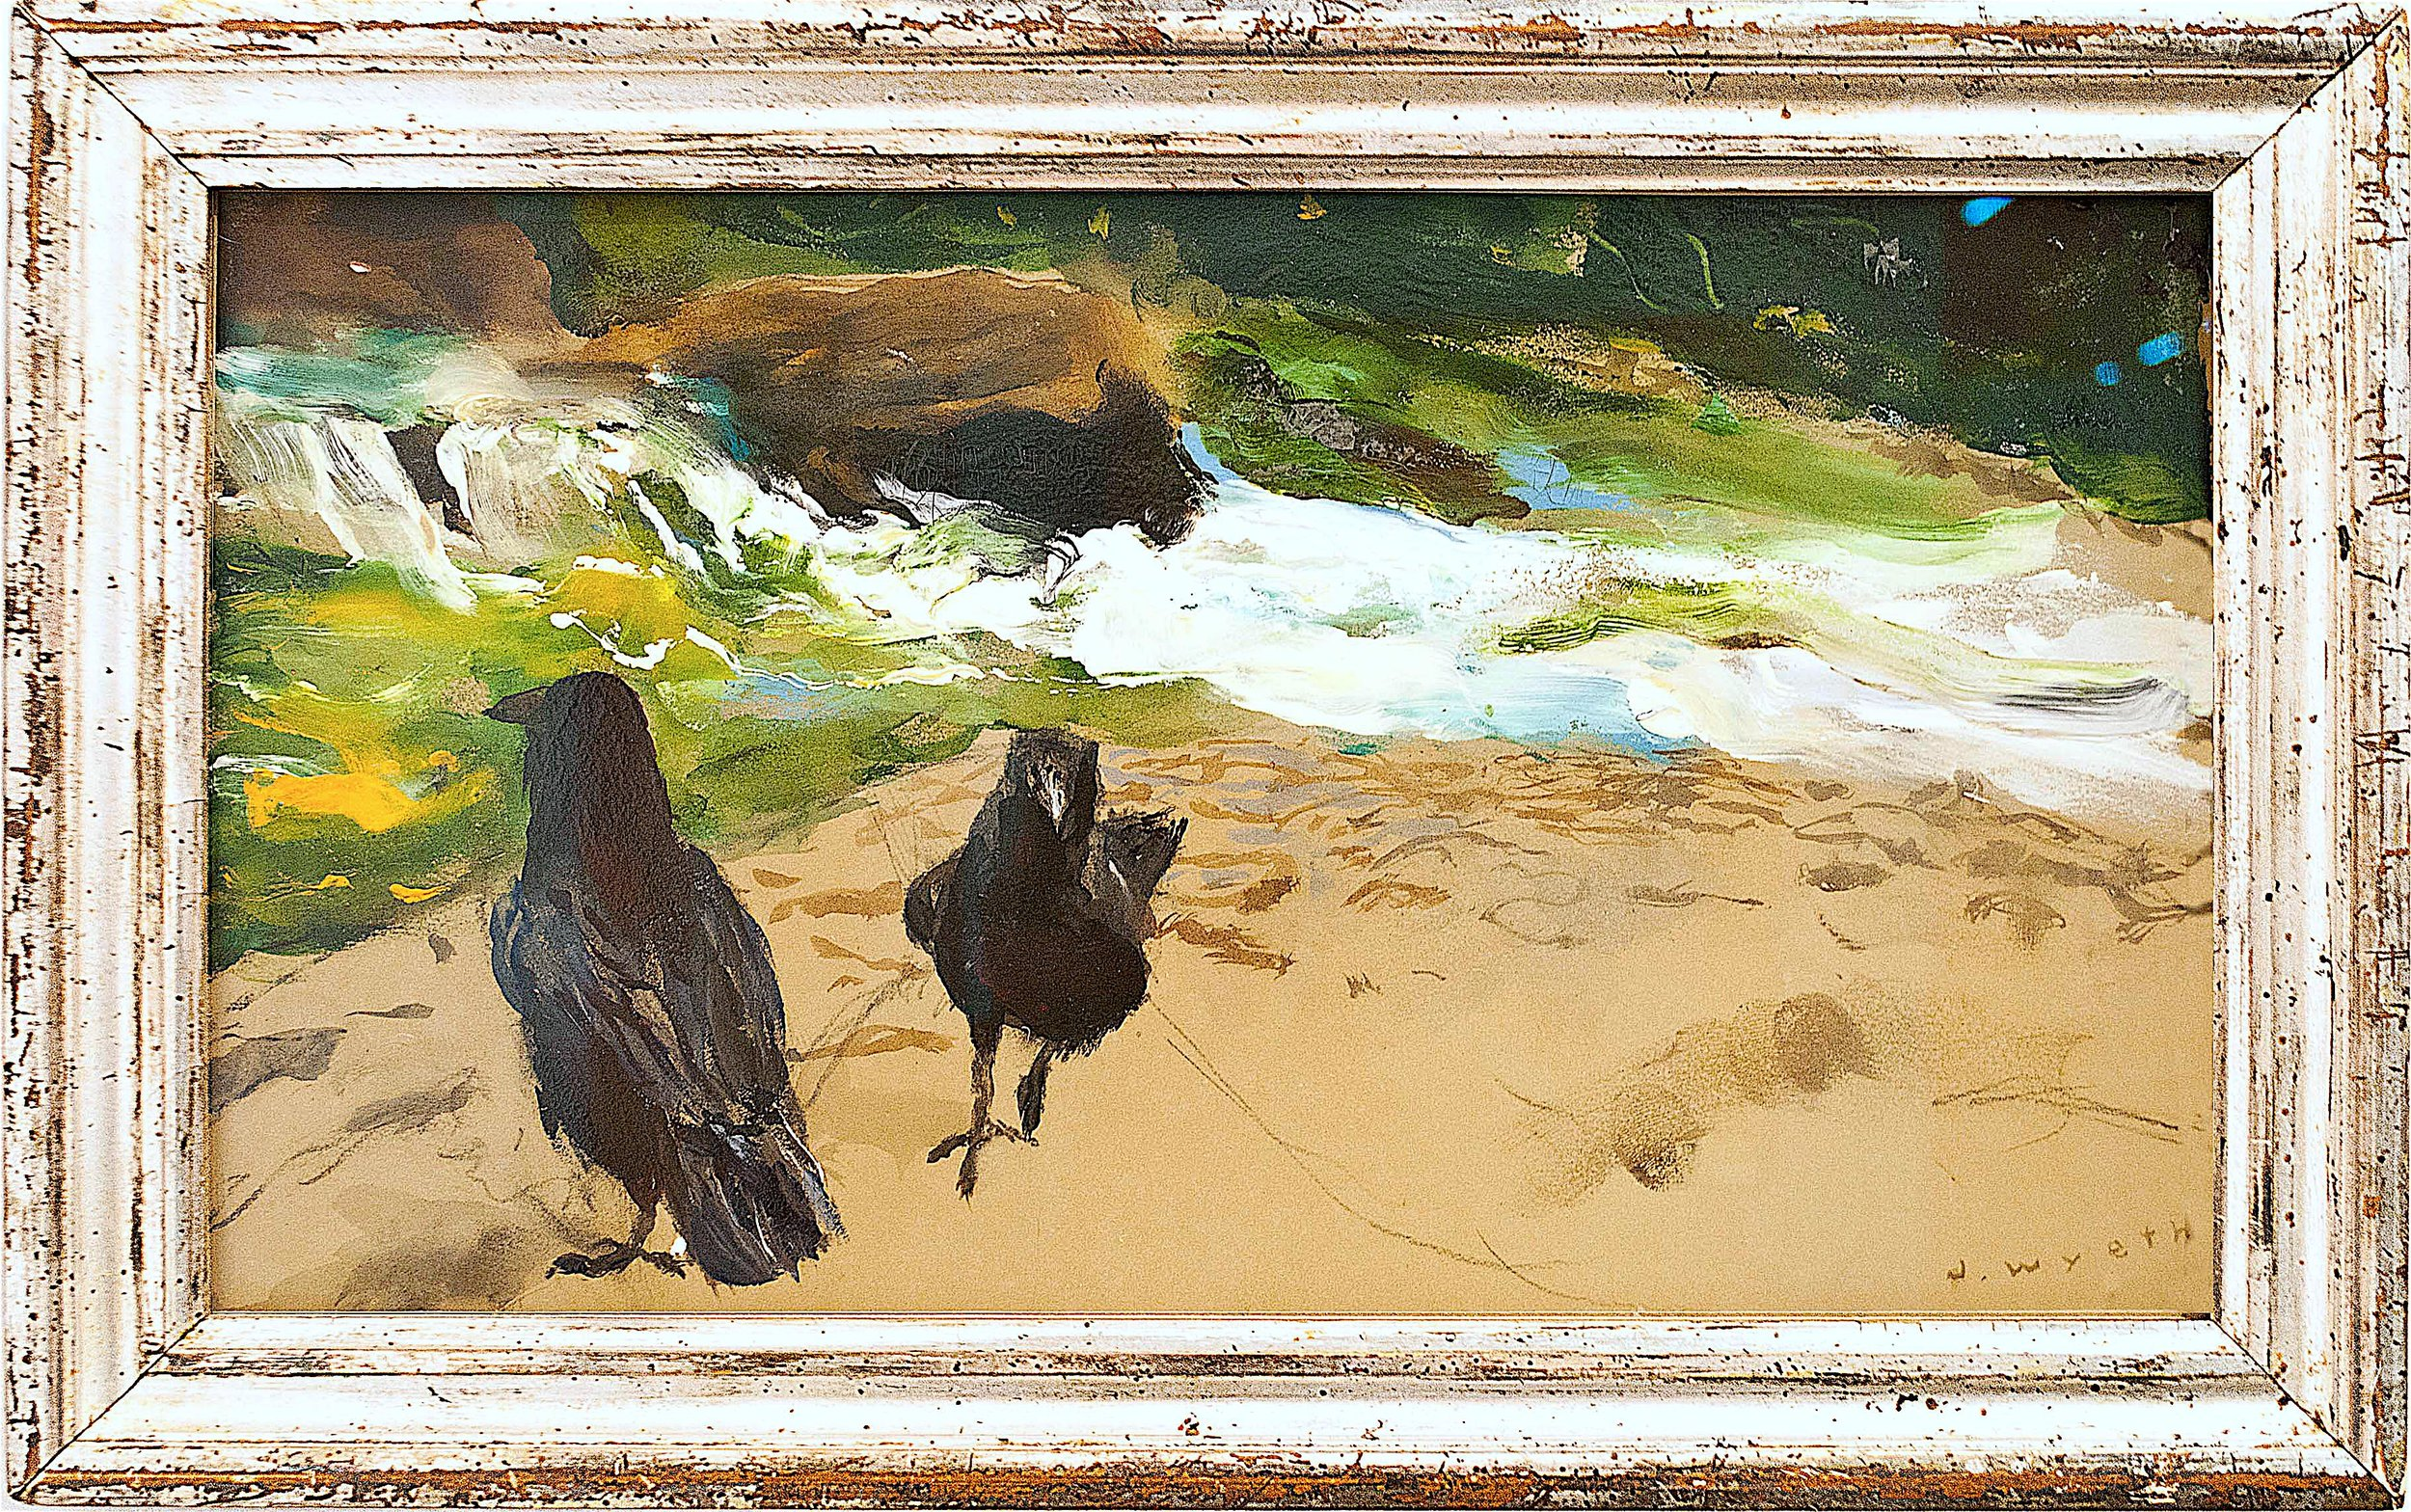 Raven Pair, Brandywine,  2010 Combined mediums on archival rag board 9 1/2 x 17 inches